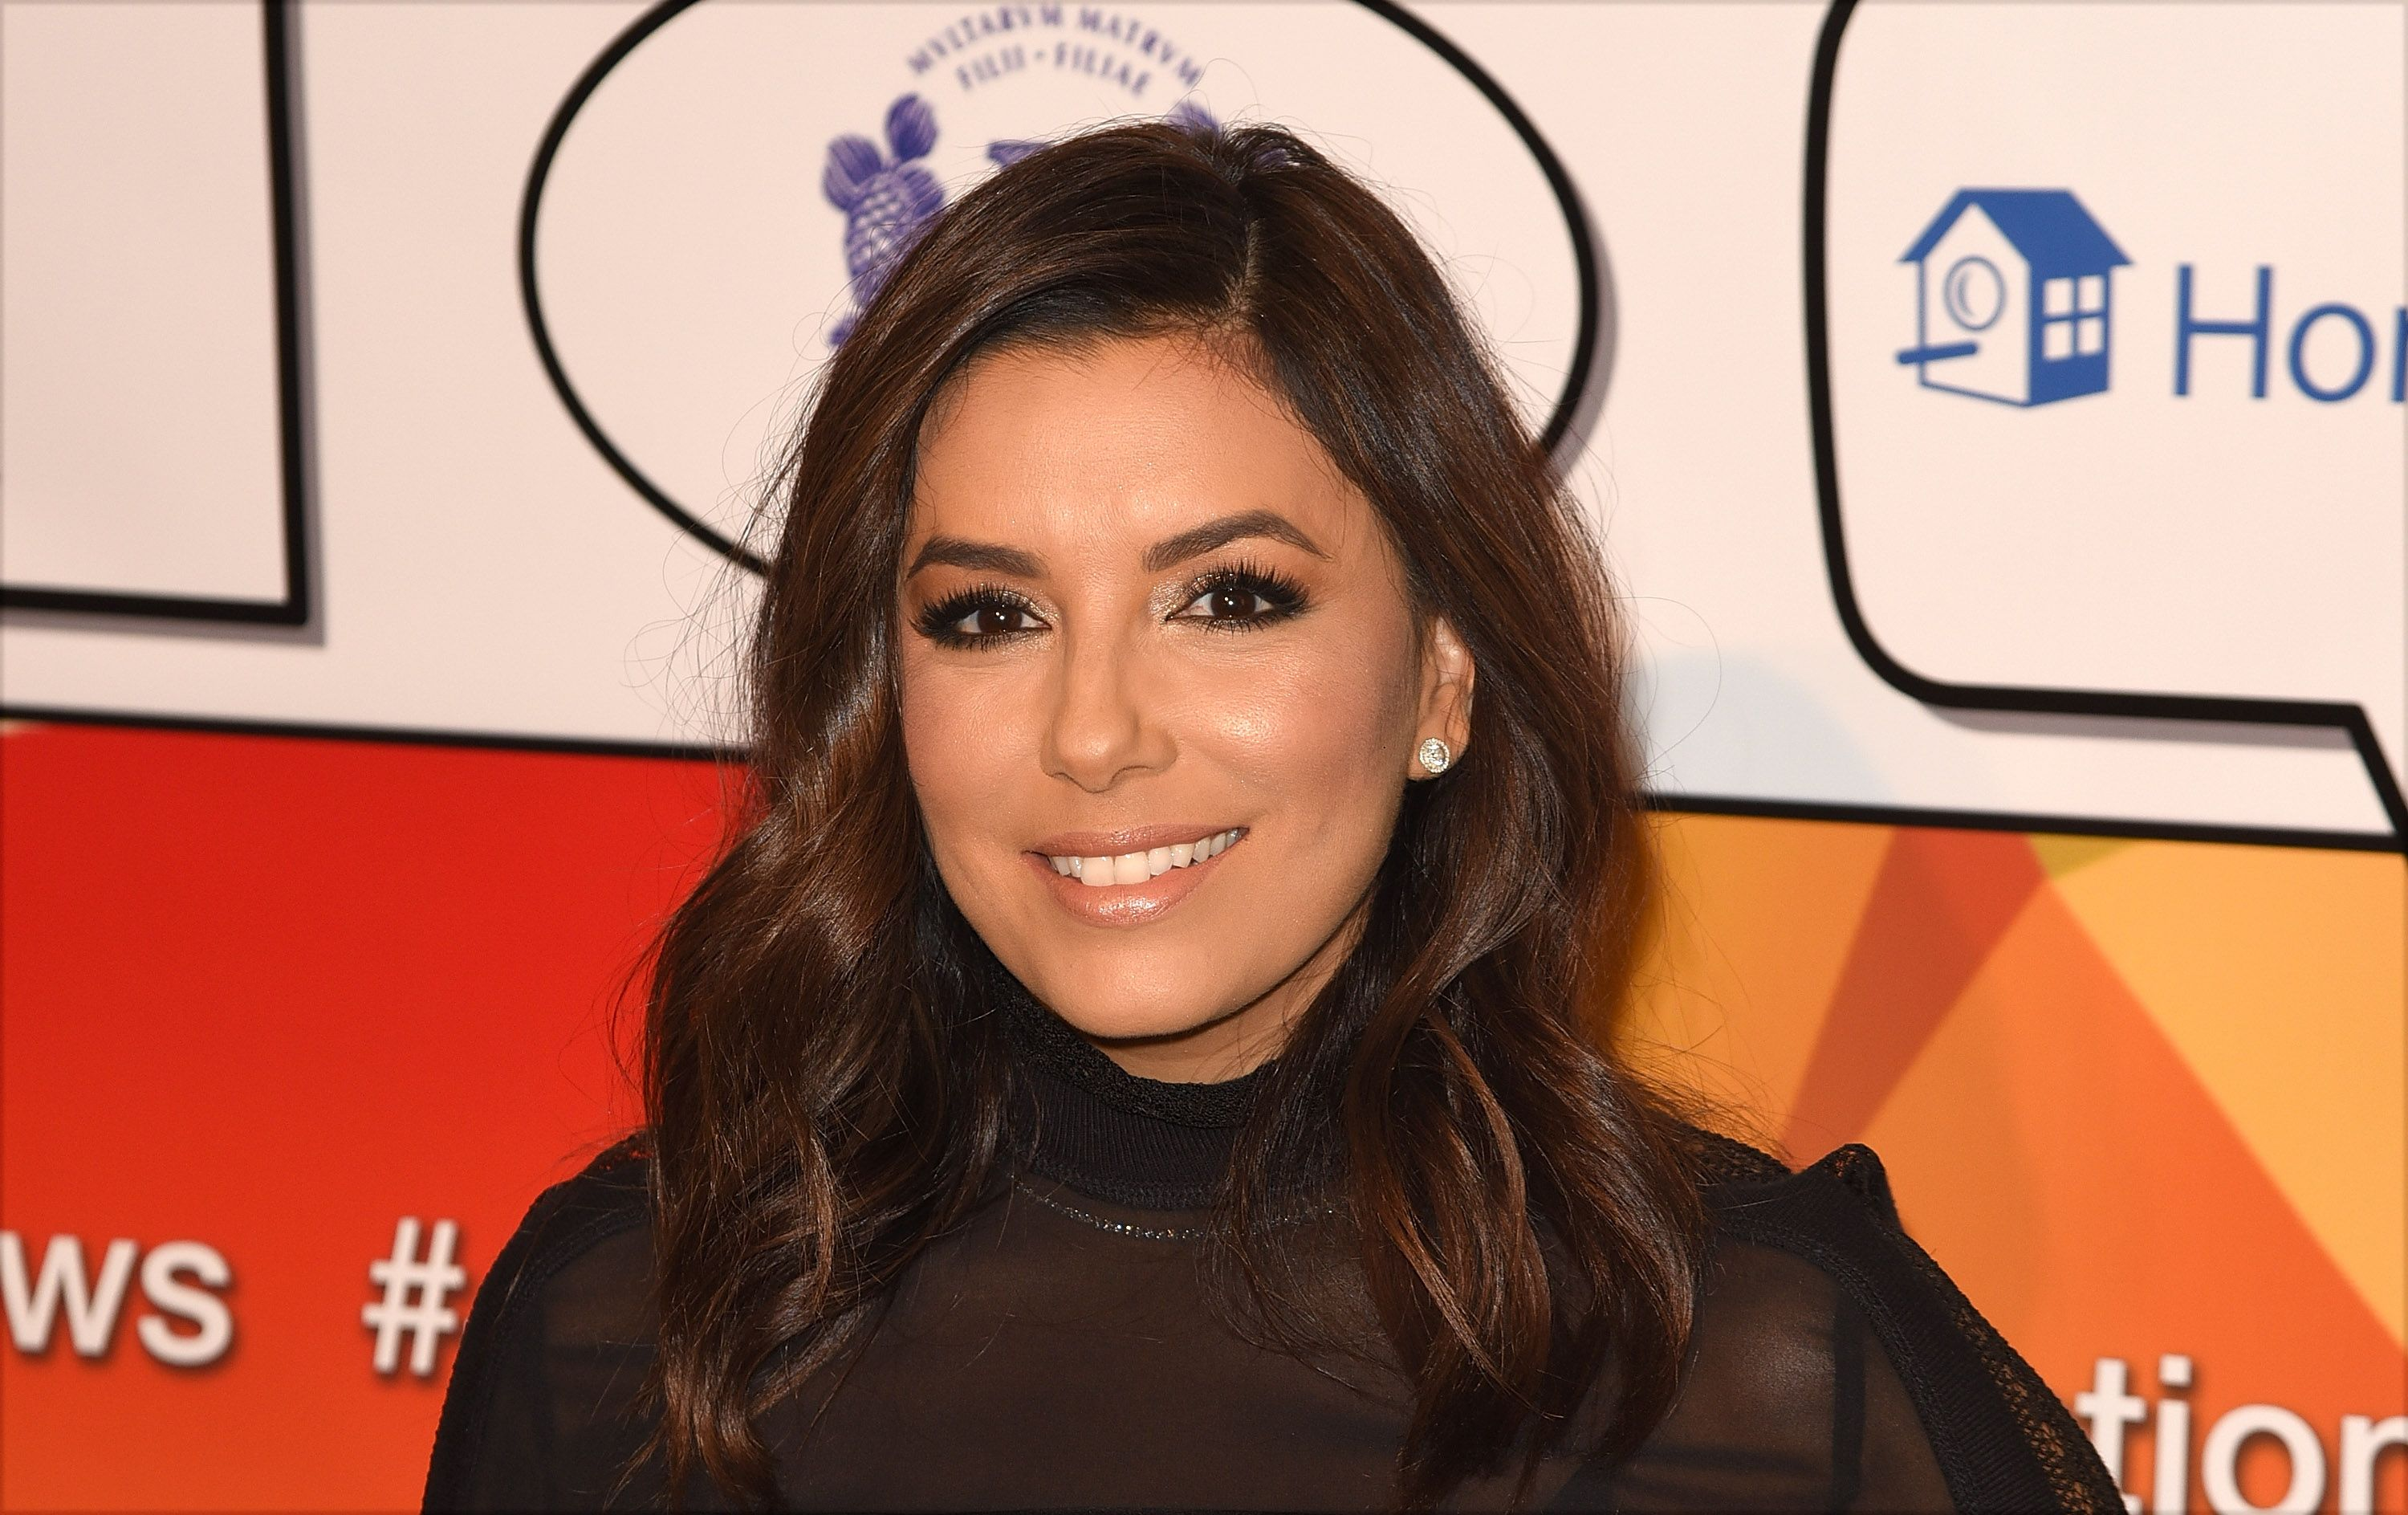 Eva Longoria at the 2017 Women's Empowerment Luncheon & Speakers Panel benefiting Global Gift Foundation and Eva Longoria Foundation at University Club of San Francisco on September 28, 2017 | Photo: Getty Images